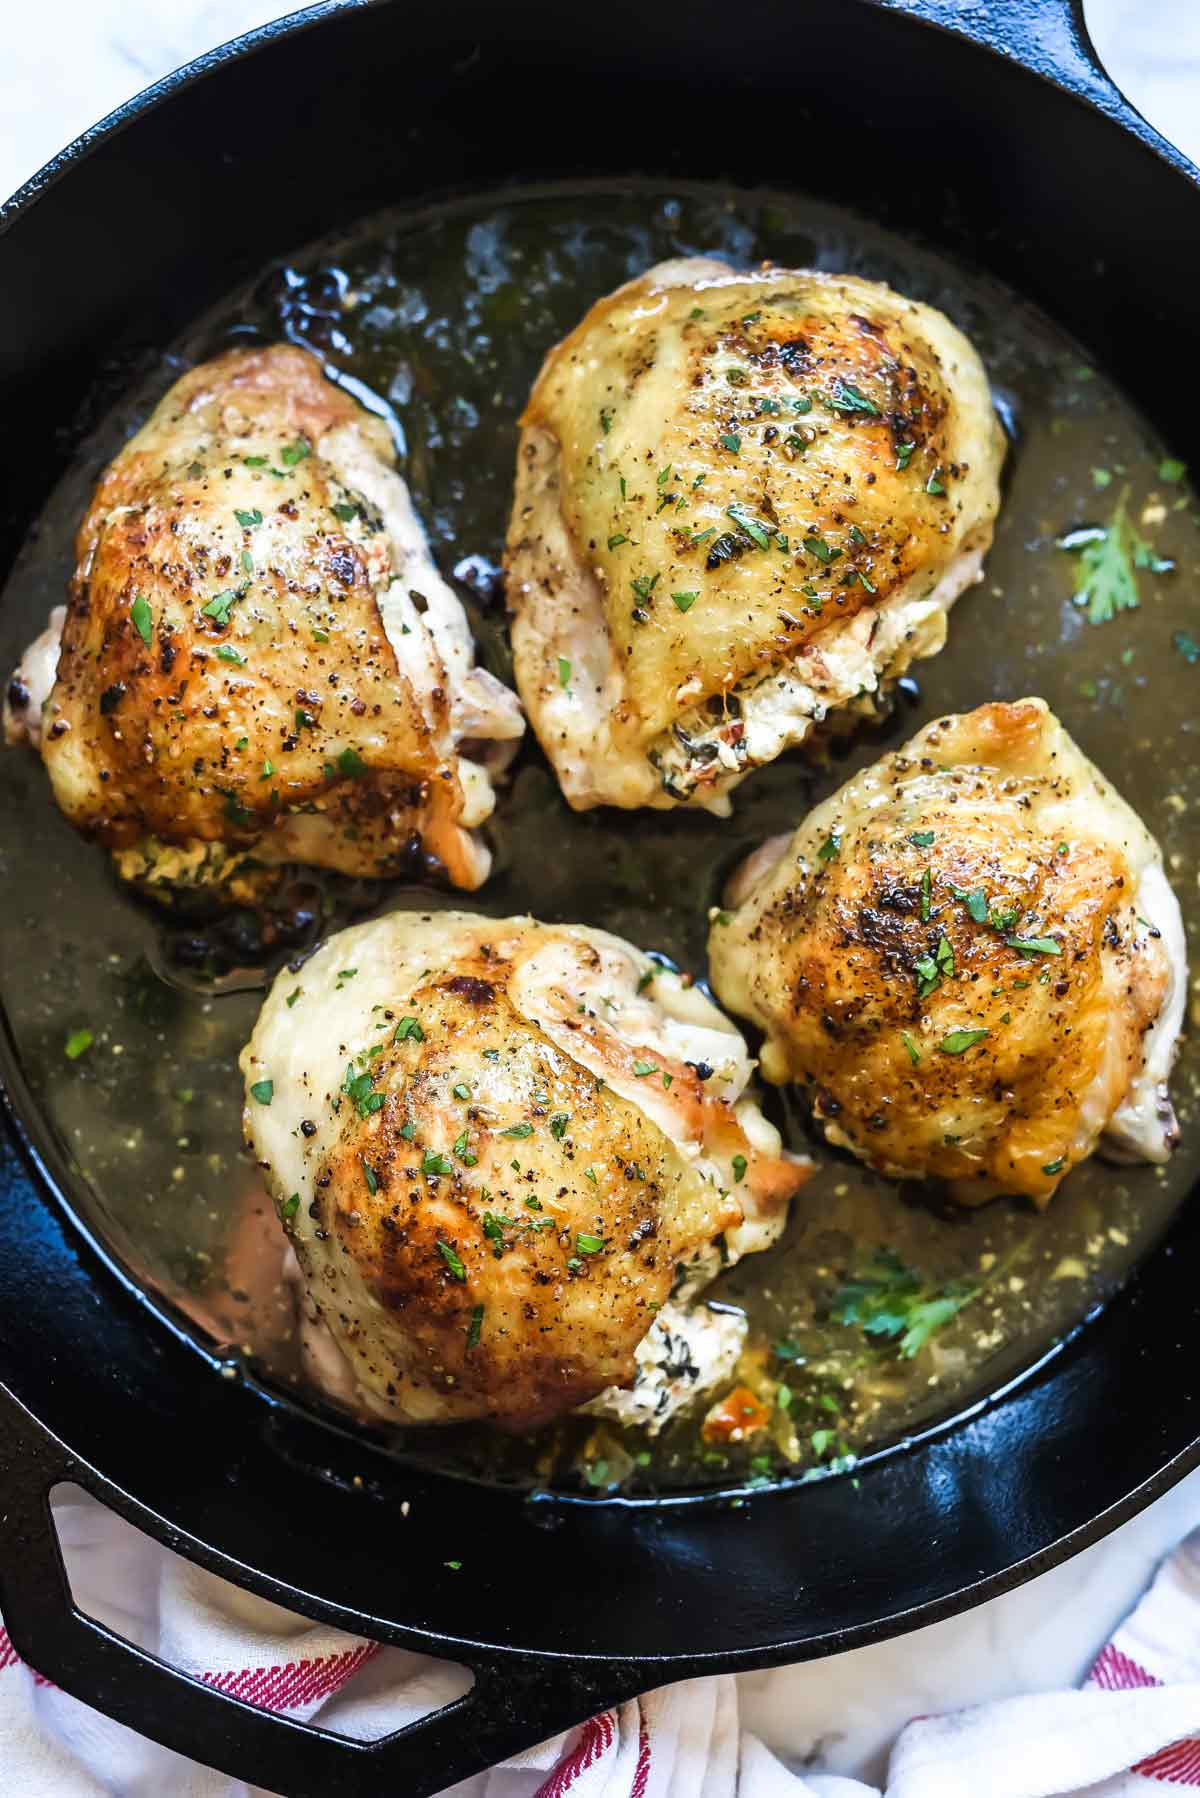 Stuffed Chicken Thighs With Spinach And Goat Cheese